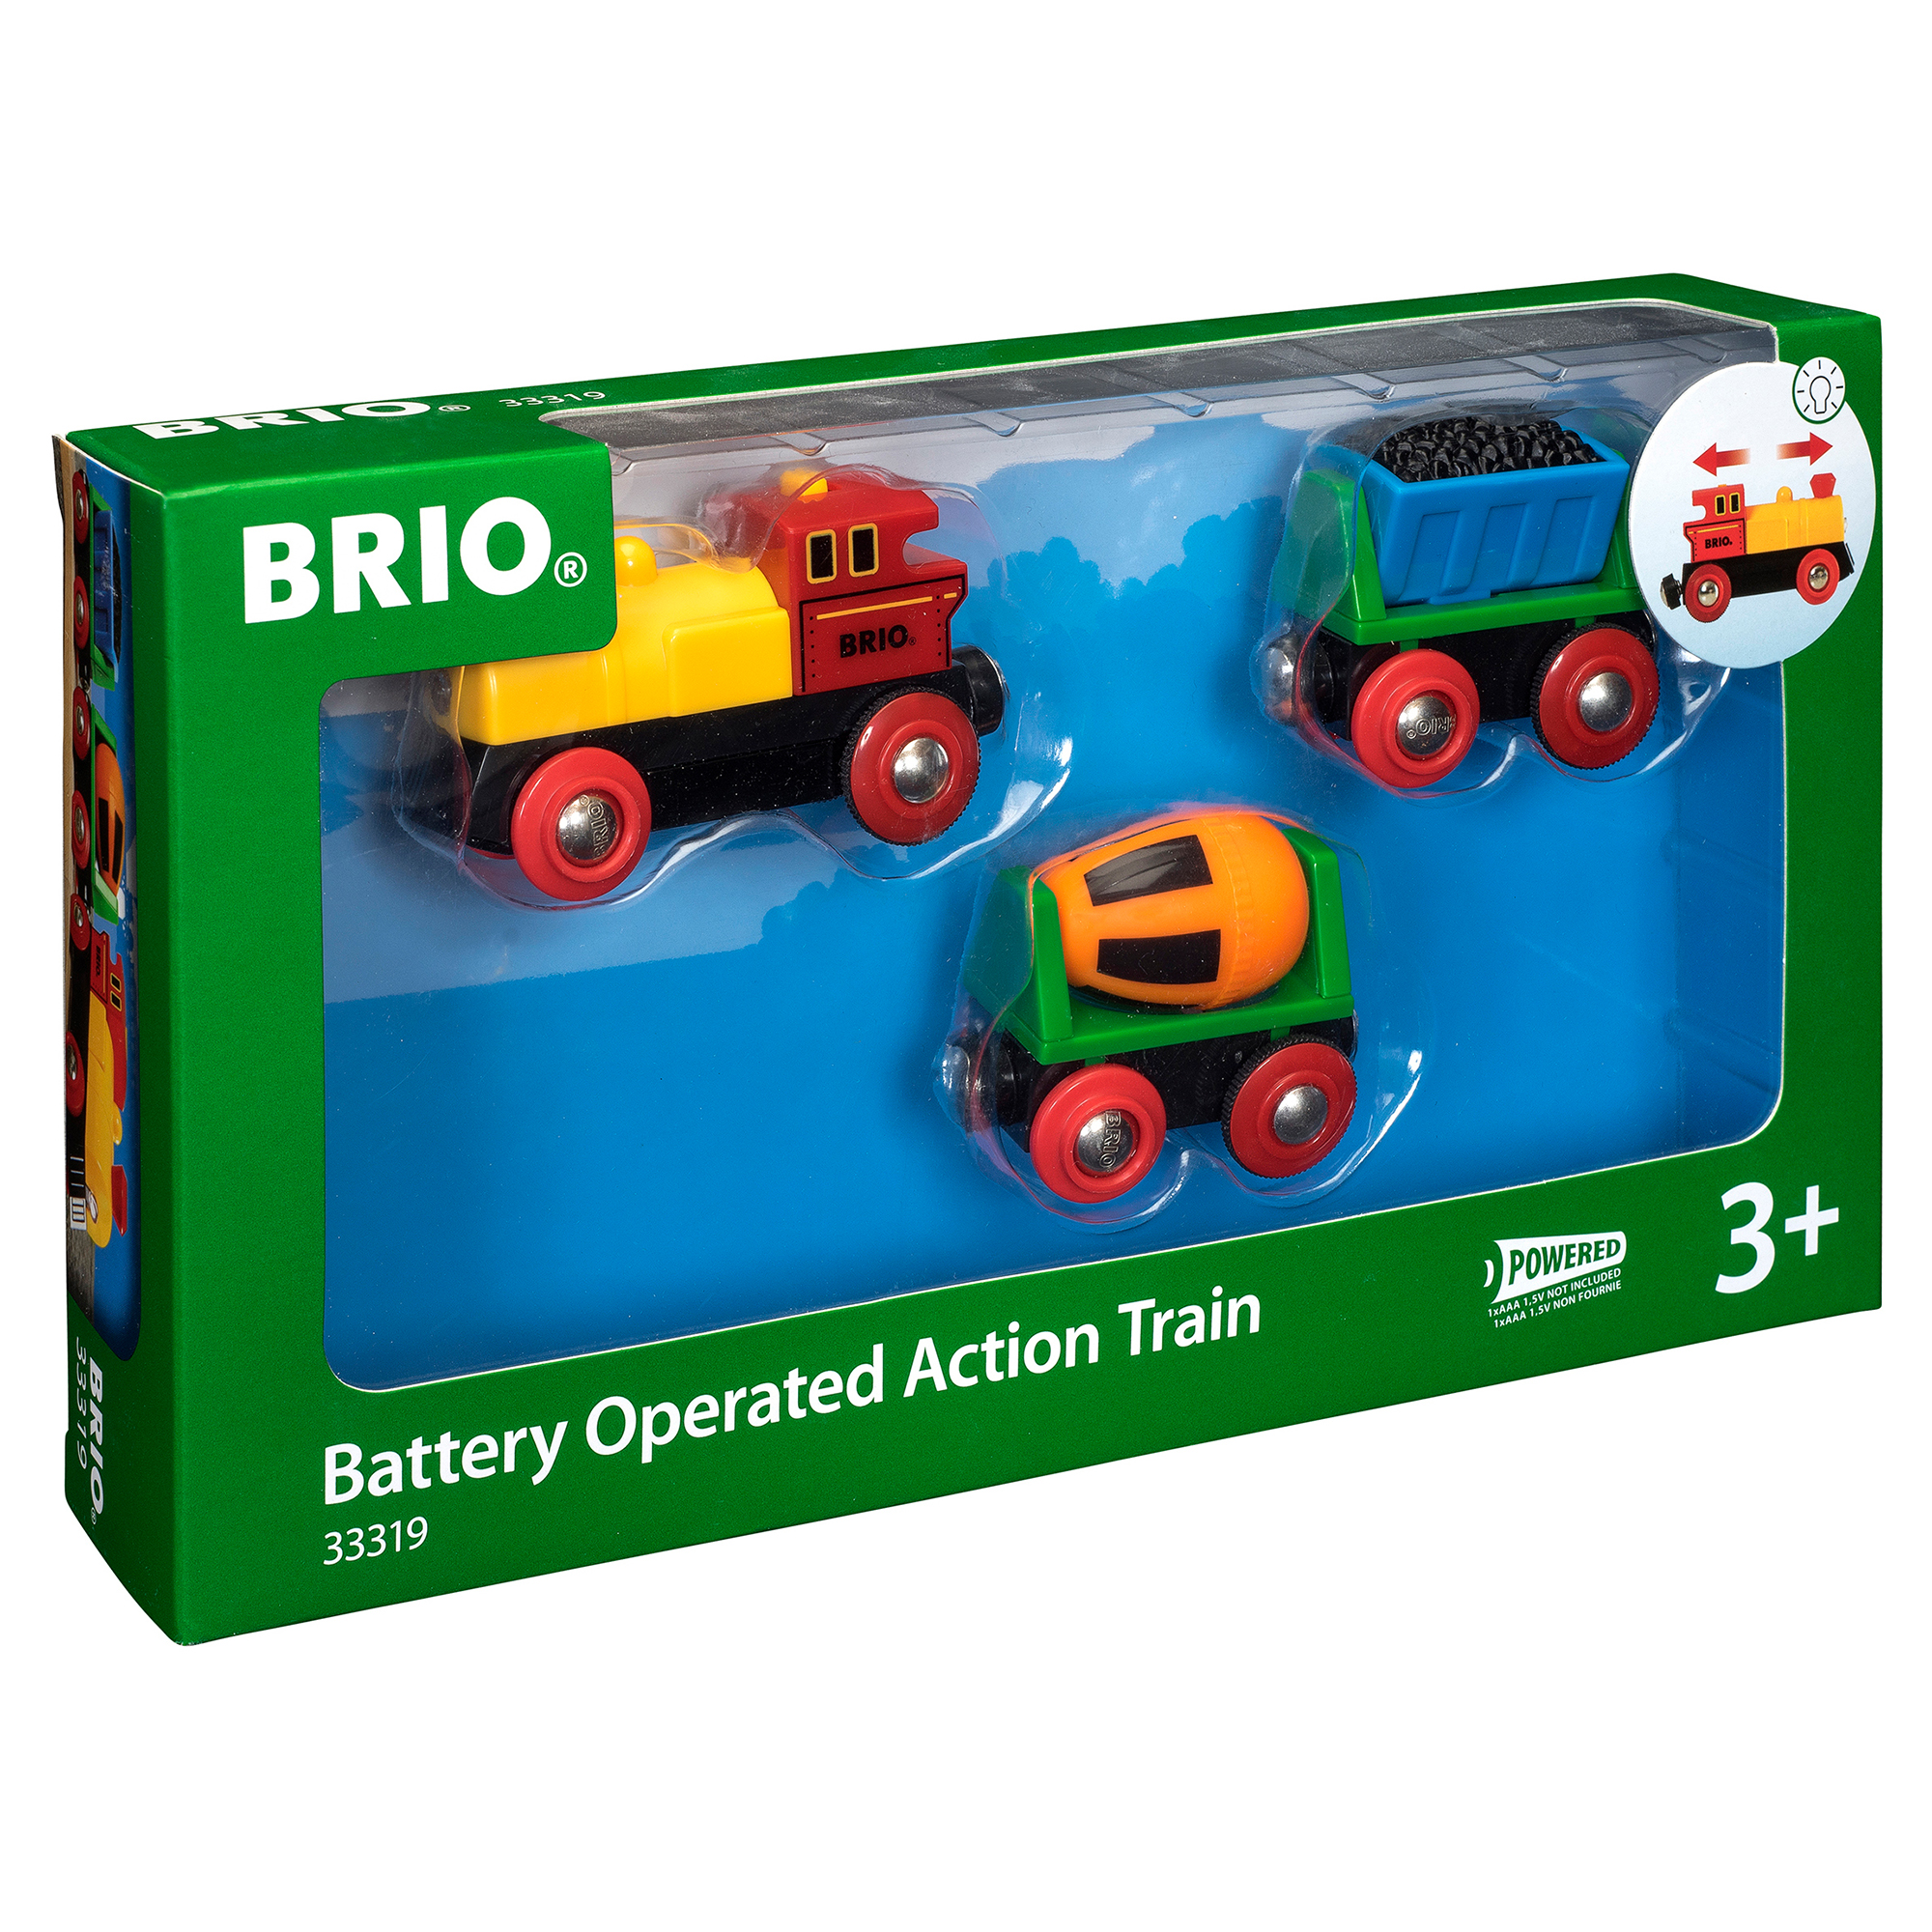 Picture of BRIO Battery Operated Action Train